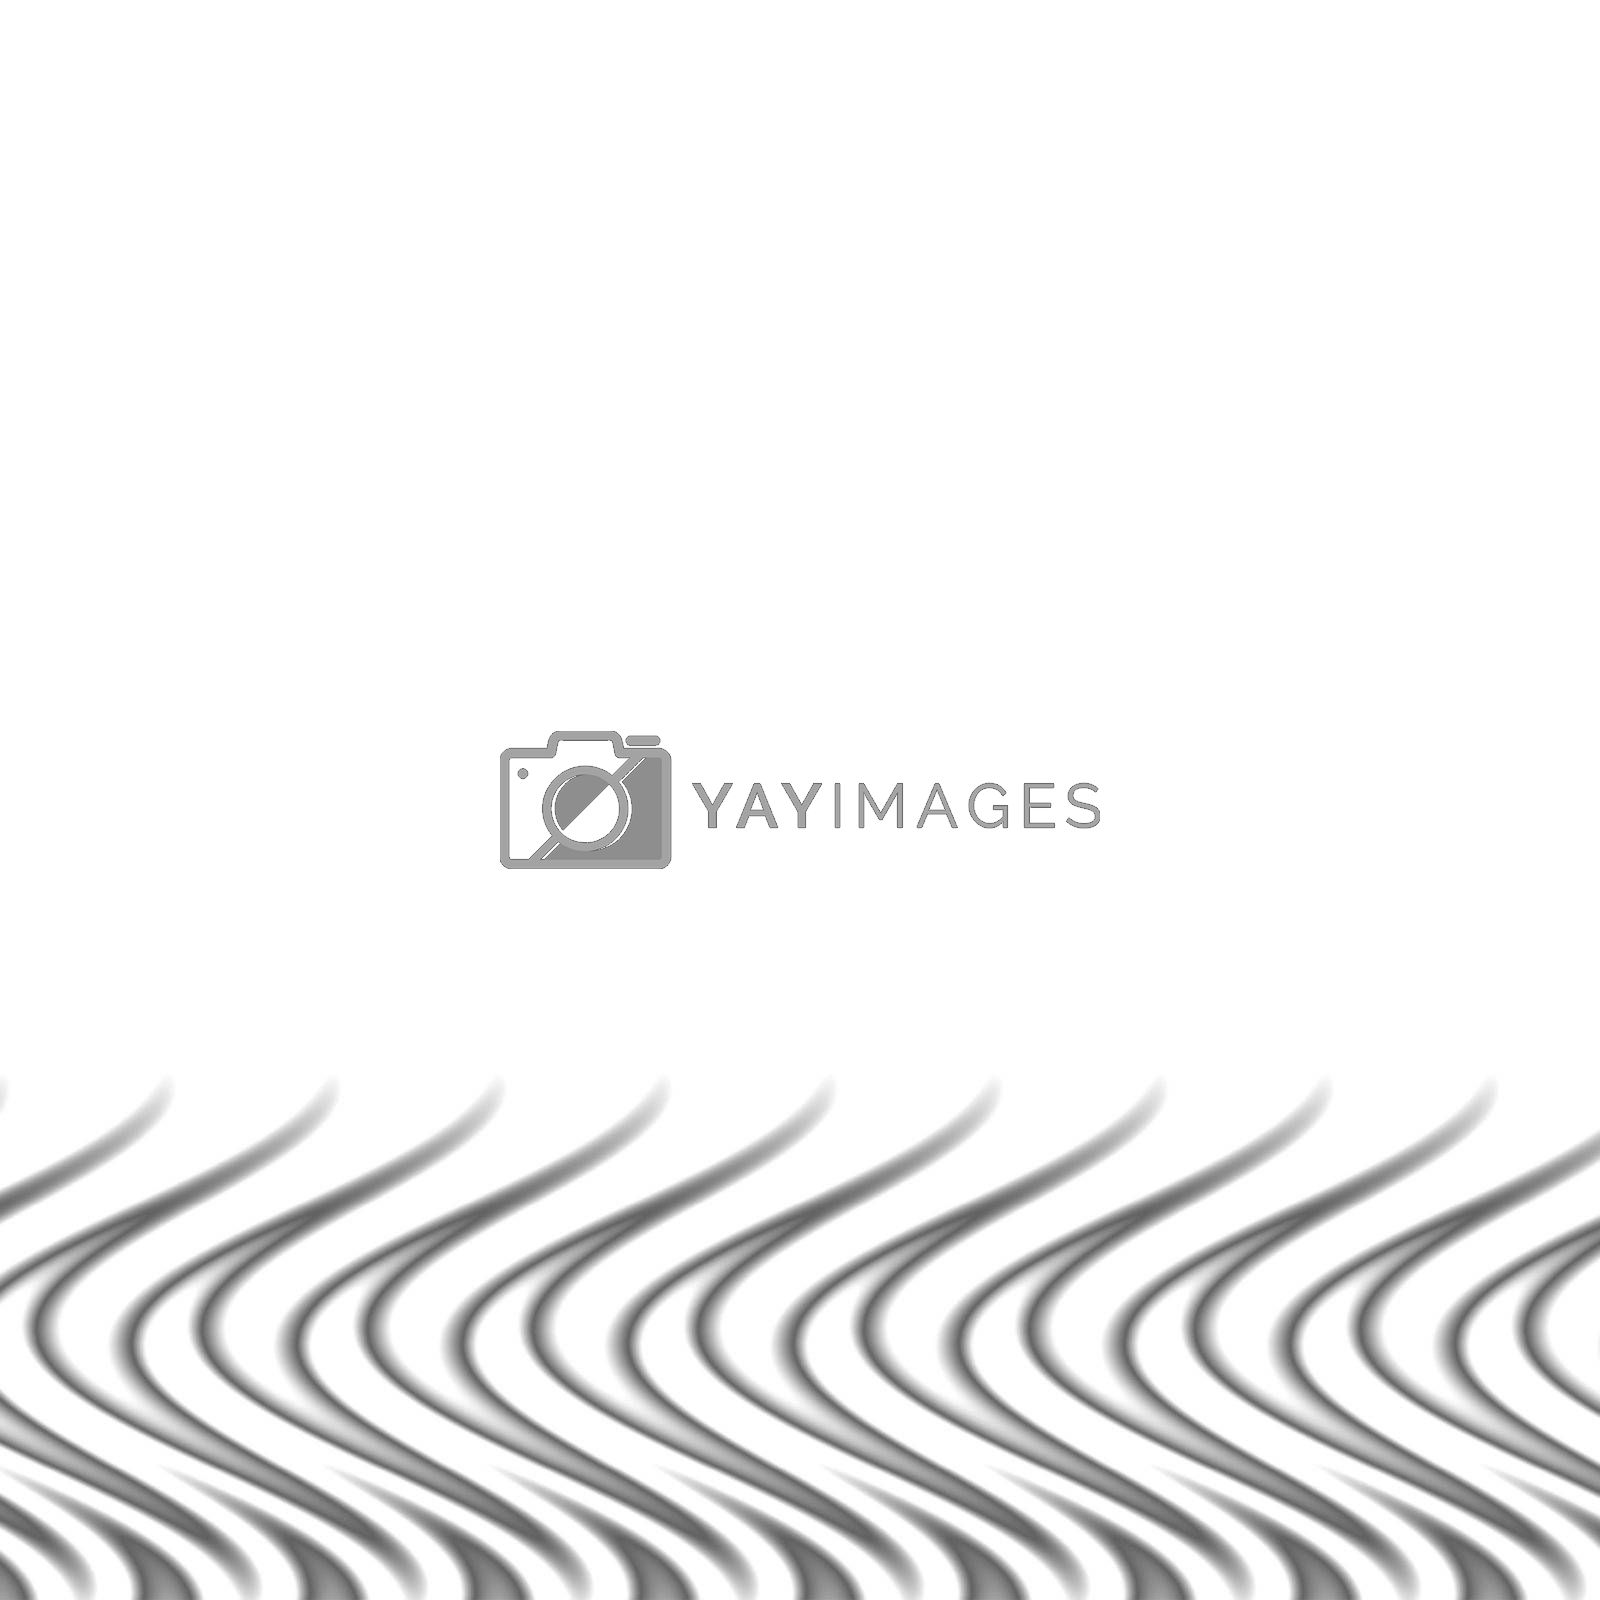 Silver flames border - a swirly abstract background illustration